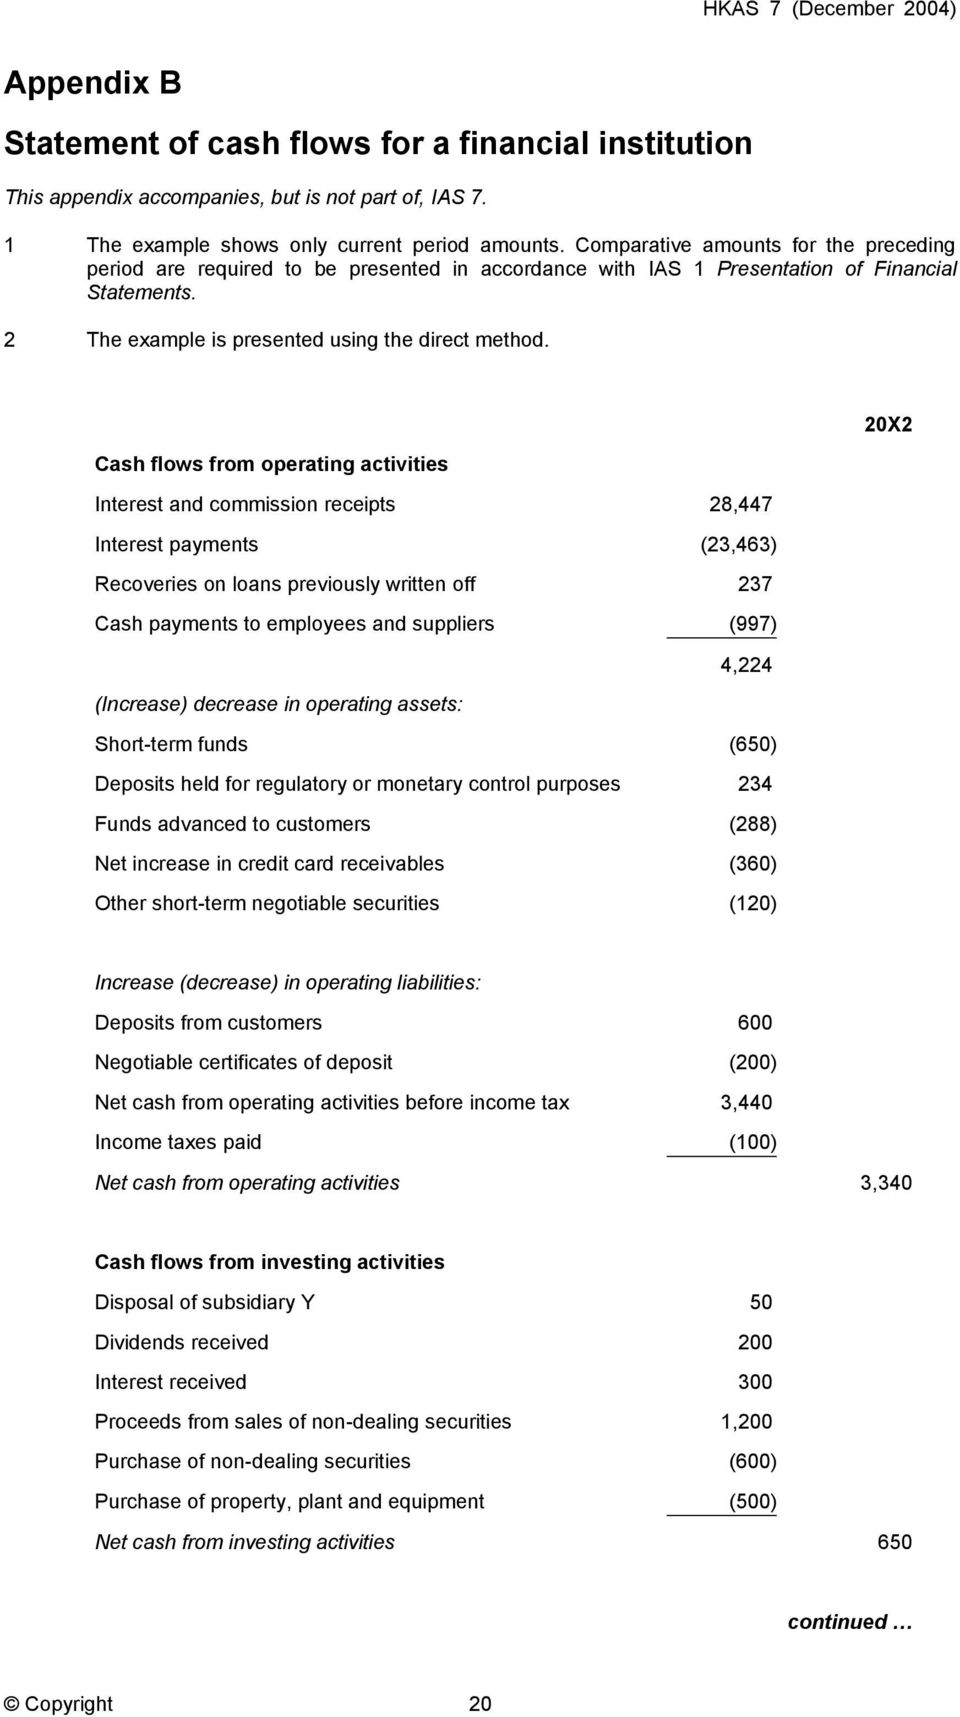 20X2 Cash flows from operating activities Interest and commission receipts 28,447 Interest payments (23,463) Recoveries on loans previously written off 237 Cash payments to employees and suppliers